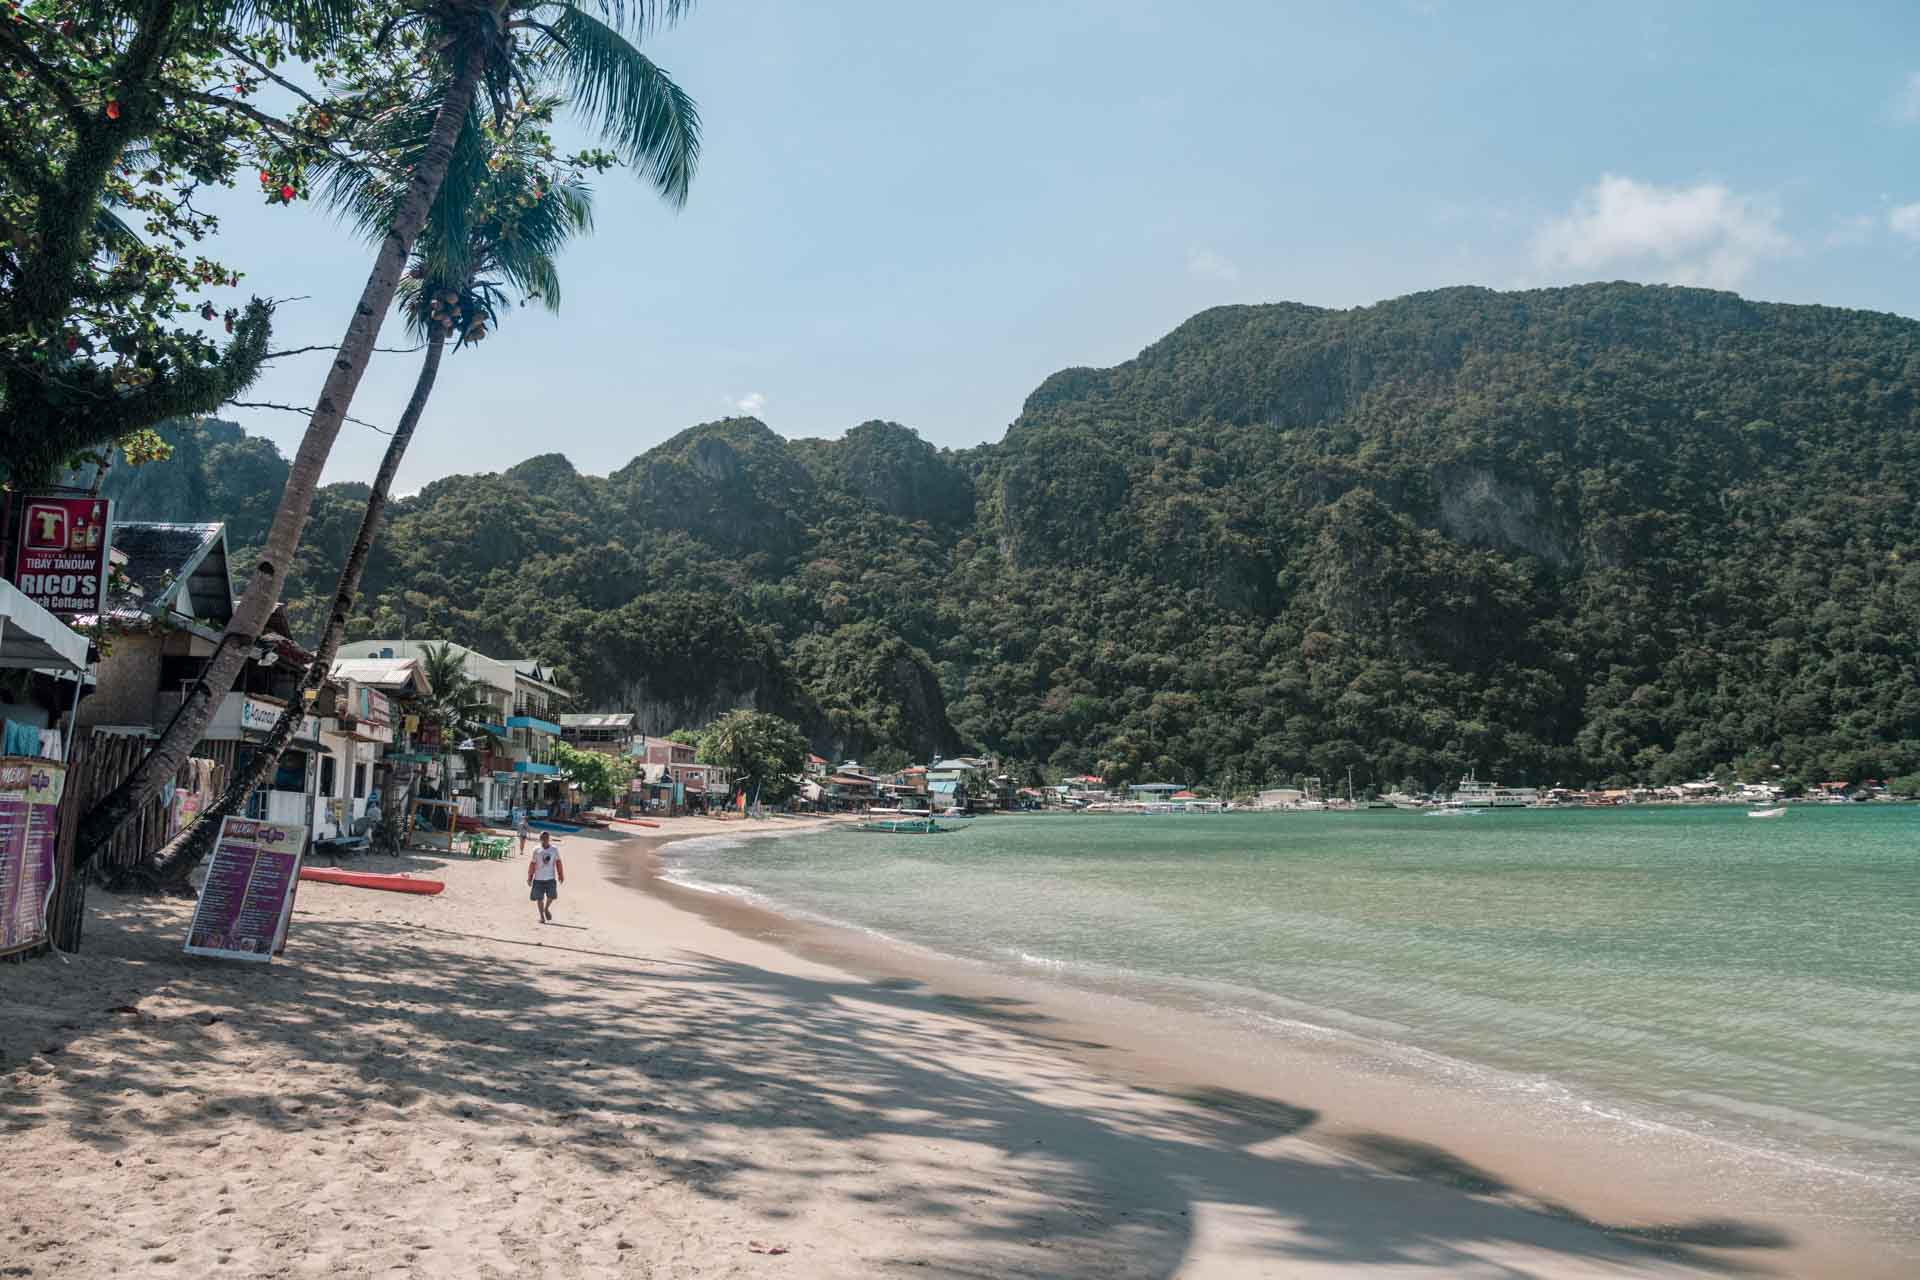 El Nido Beach during the day